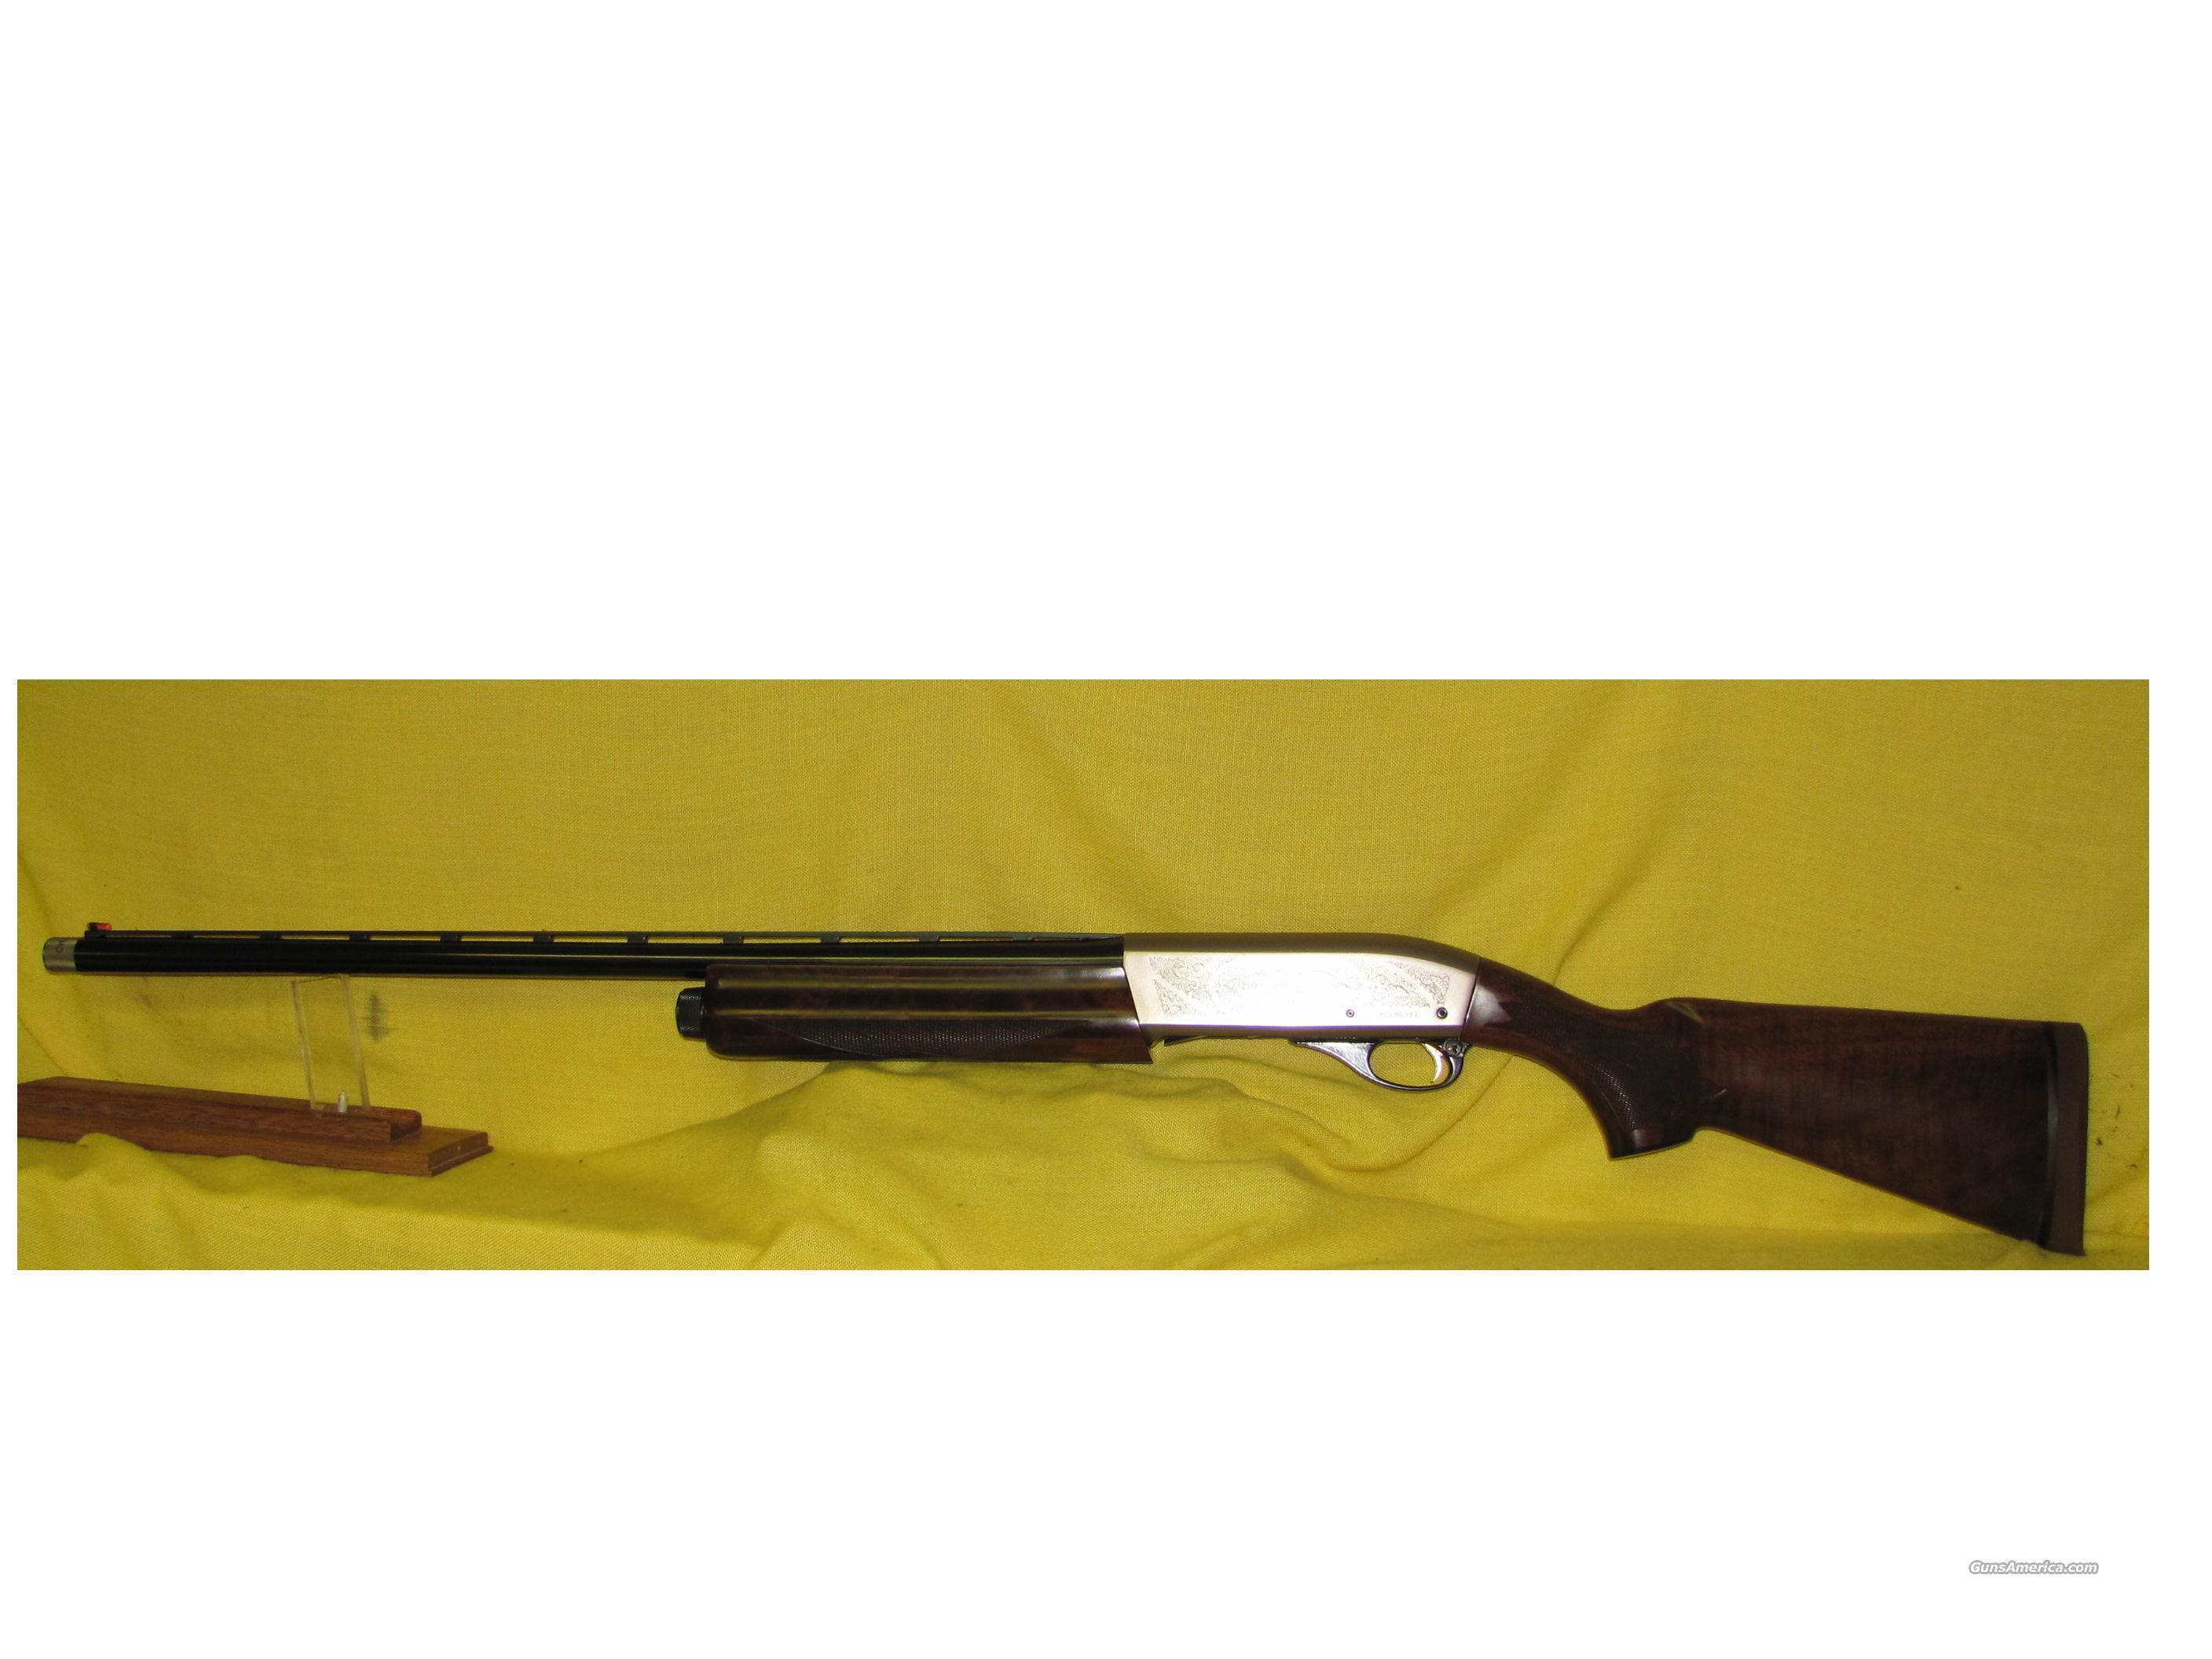 REMINGTON 1187 SPORTING CLAYS 12GA  Guns > Shotguns > Remington Shotguns  > Autoloaders > Trap/Skeet